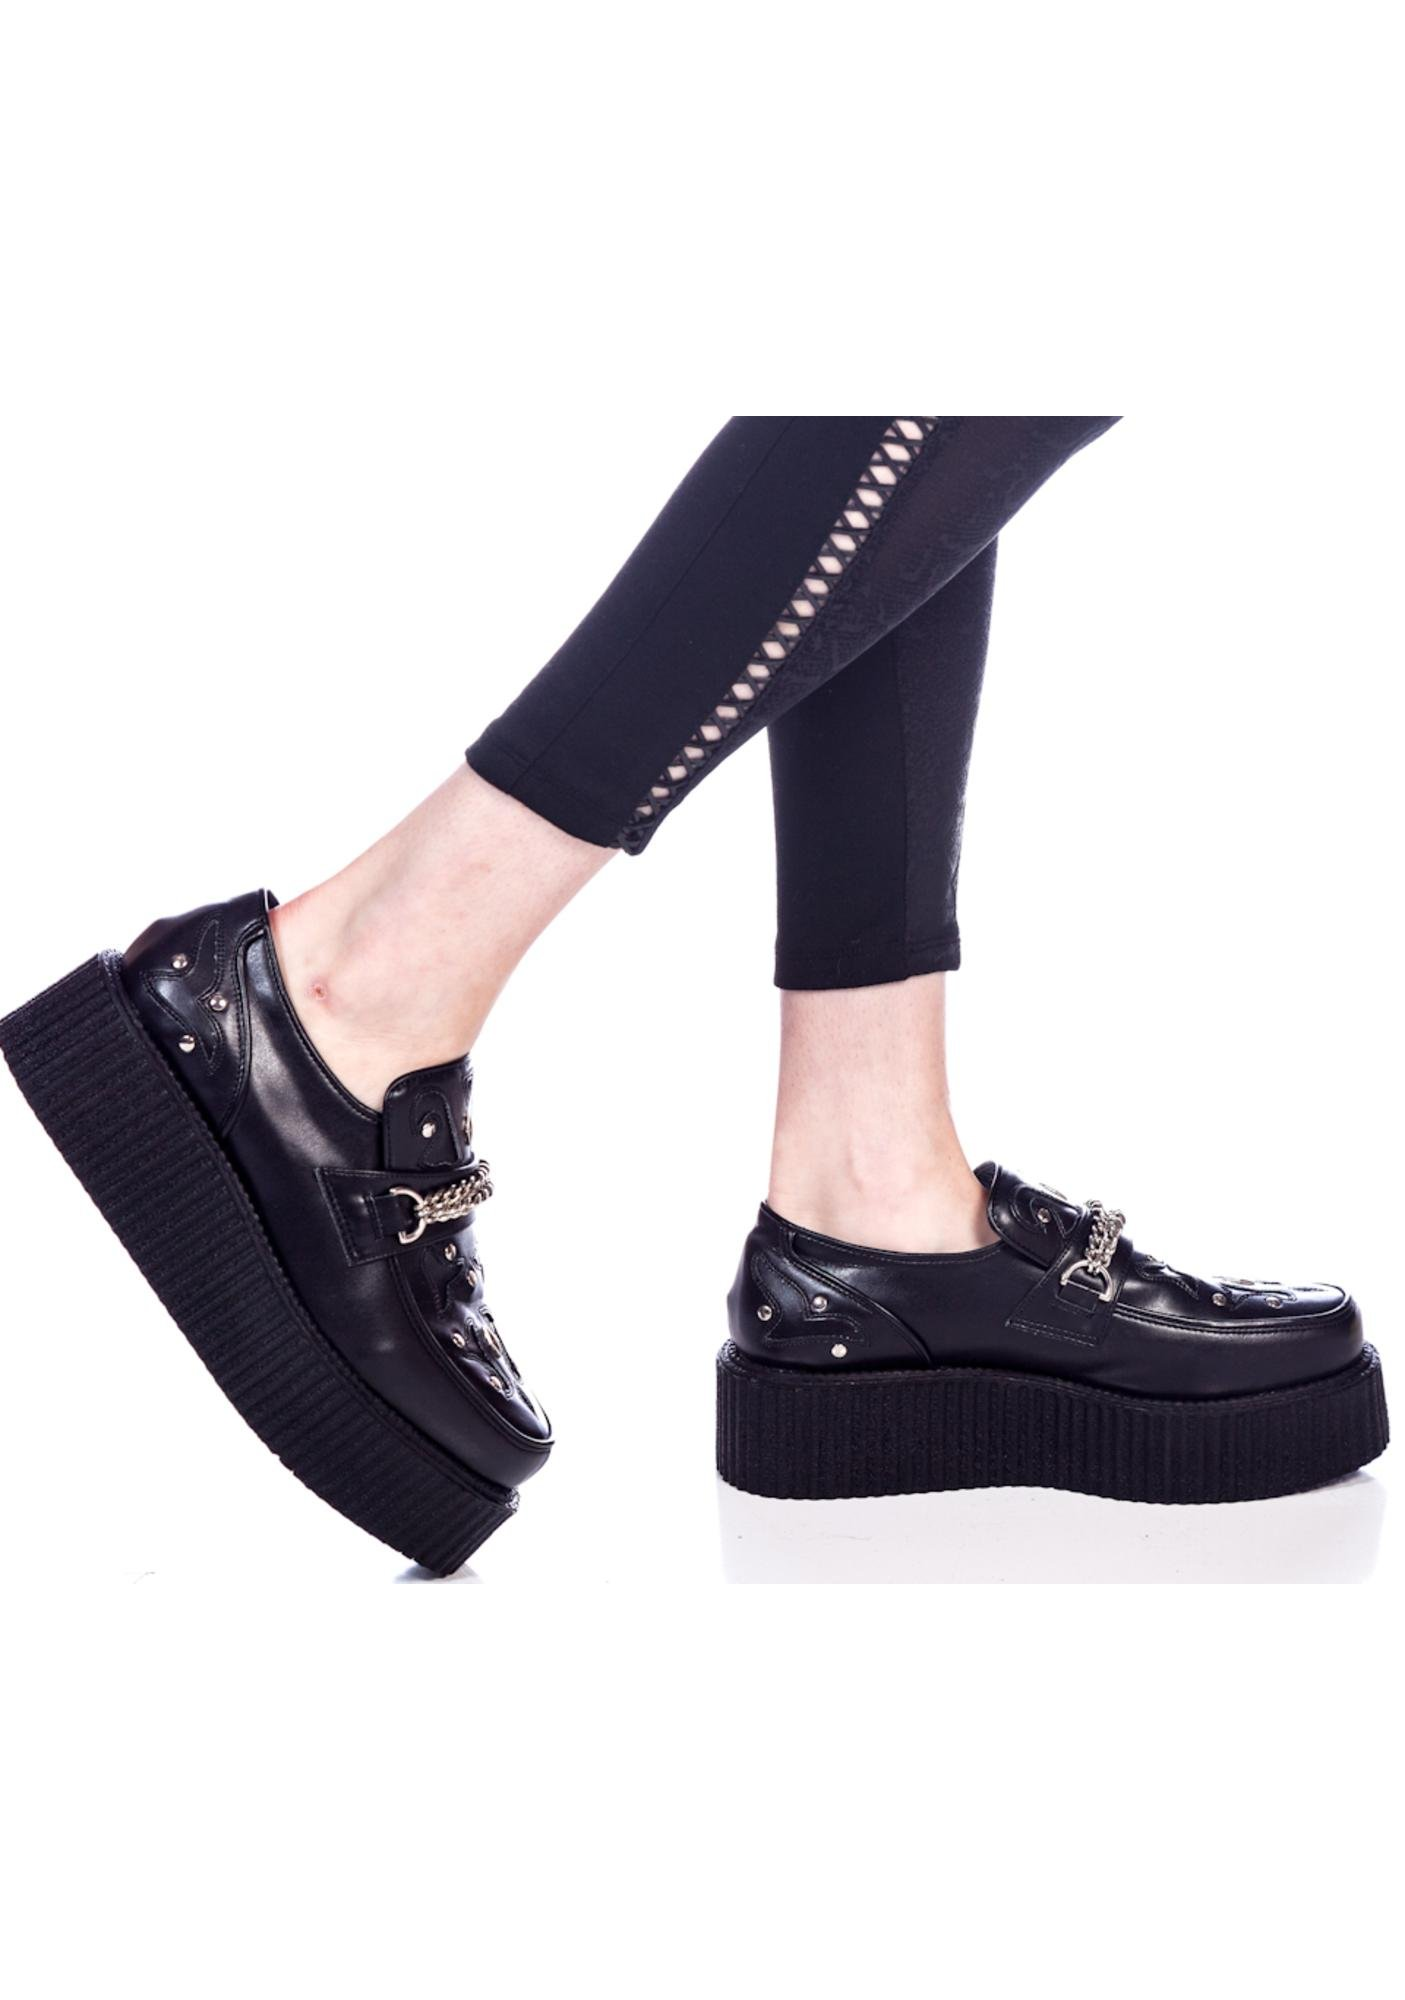 Demonia Chained Creepers